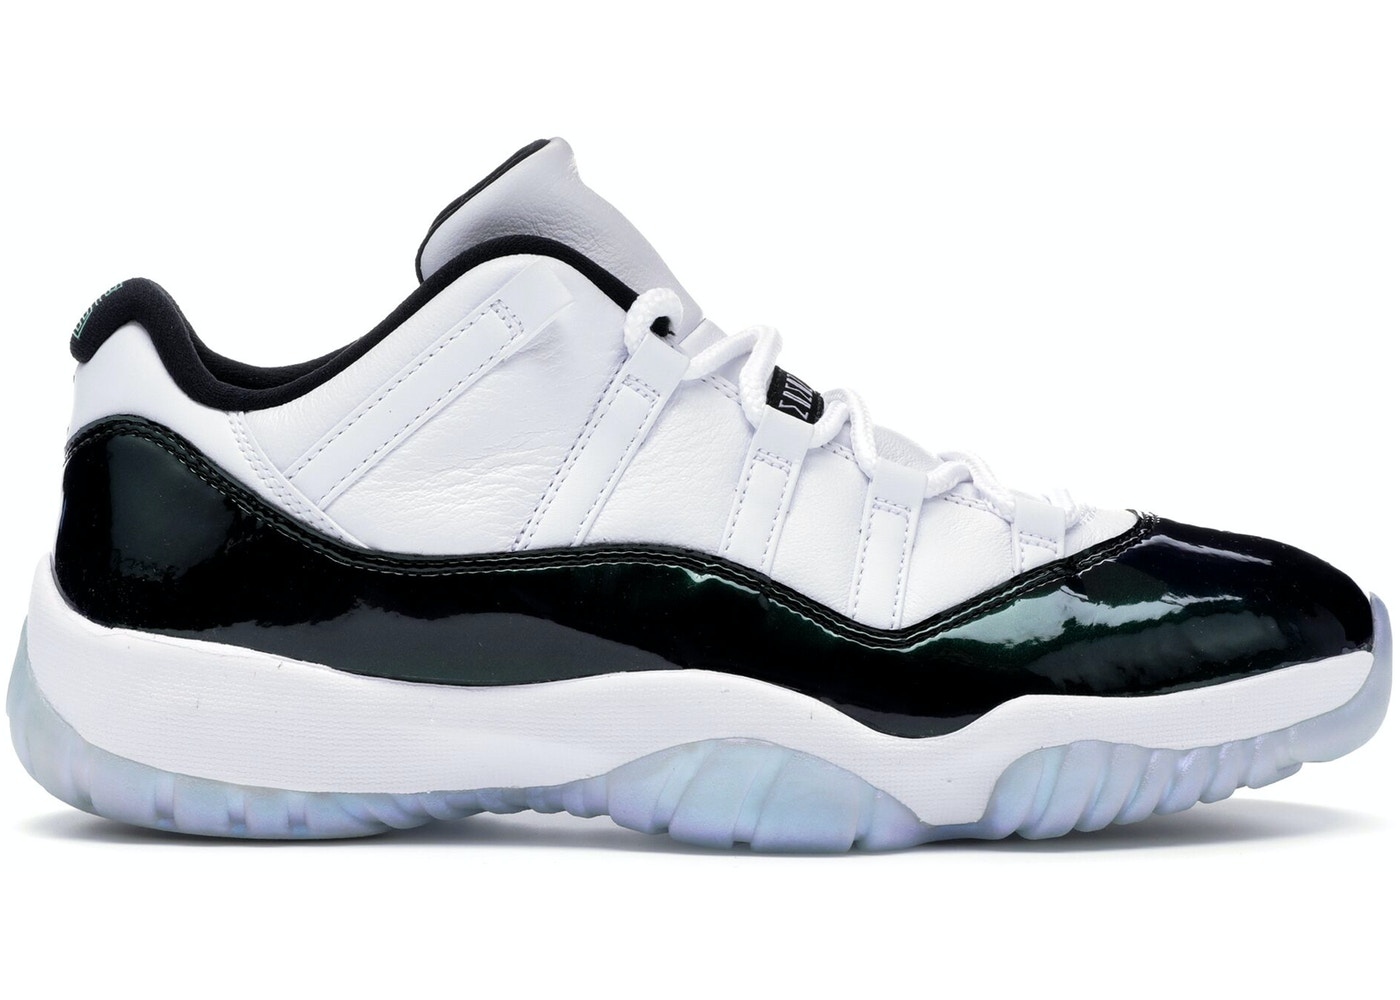 54a862c7561ce3 Jordan 11 Retro Low Iridescent - 528895-145